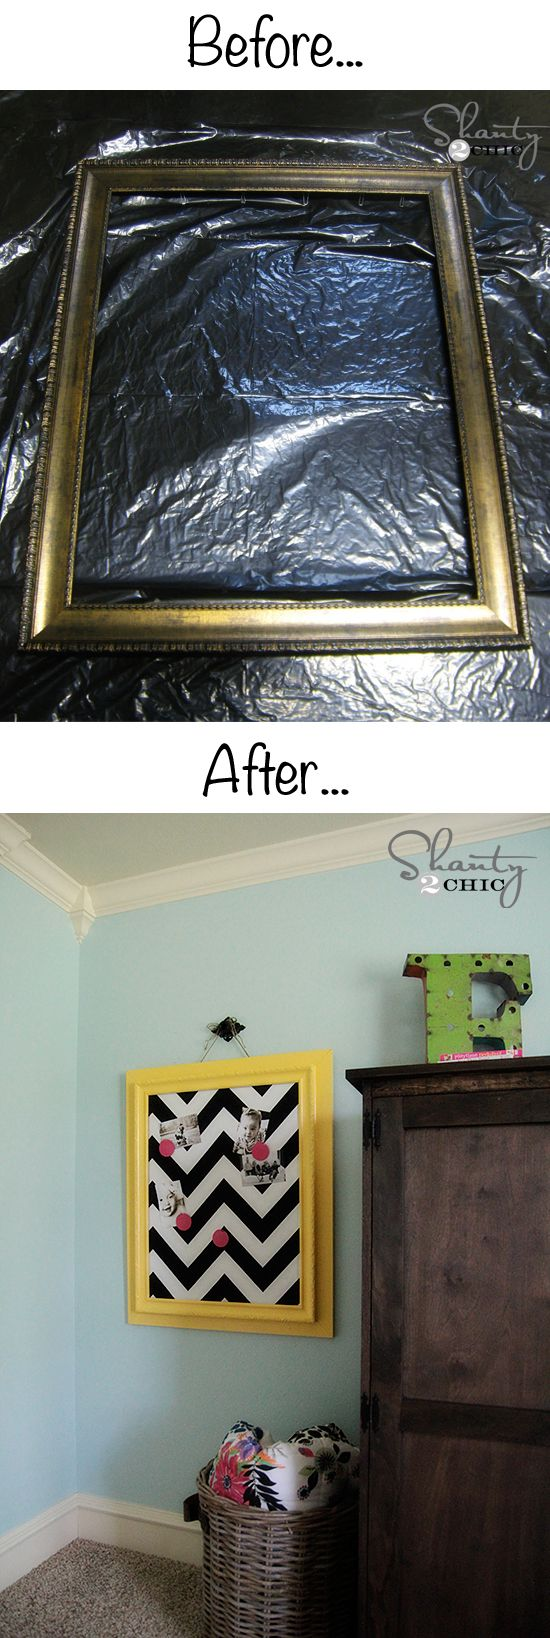 How to make a magnetic memo board from an old frame... So cheap and easy! Shanty-2-Chic.com diy home decor on a budget